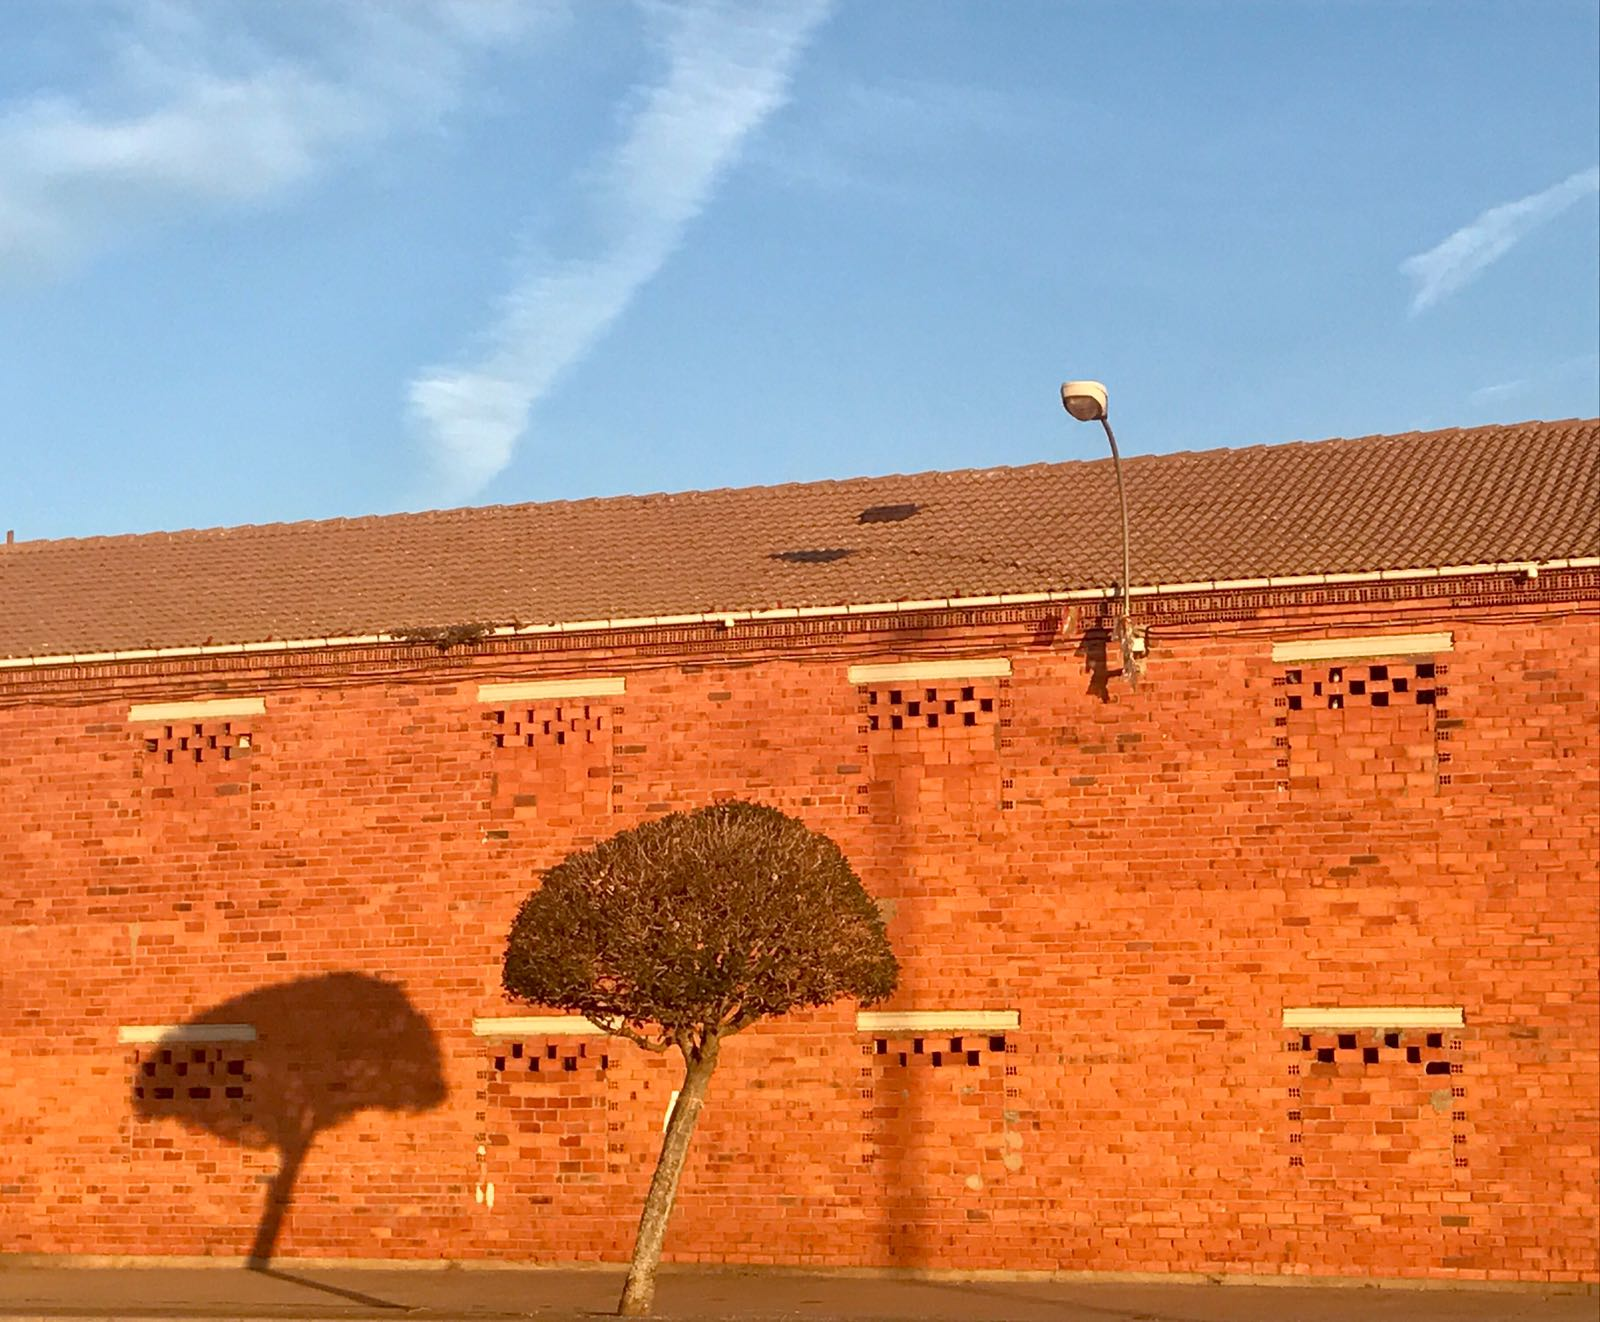 Orange building with a single tree in front of it on the Camino path